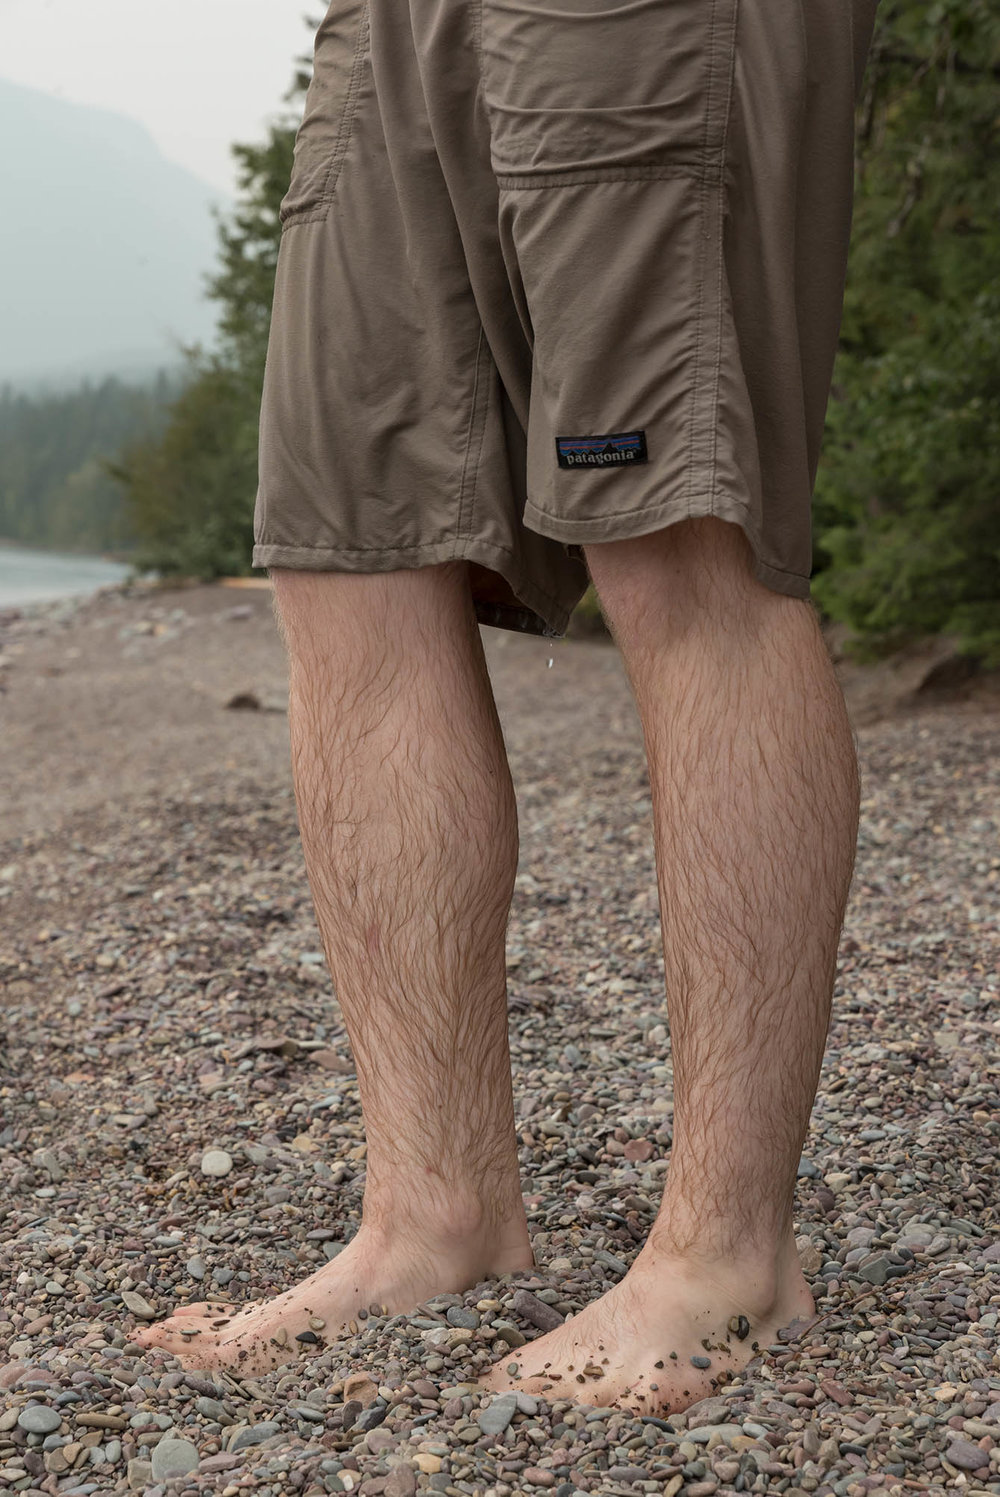 collins_legs_at_lake_mcdonald.jpg